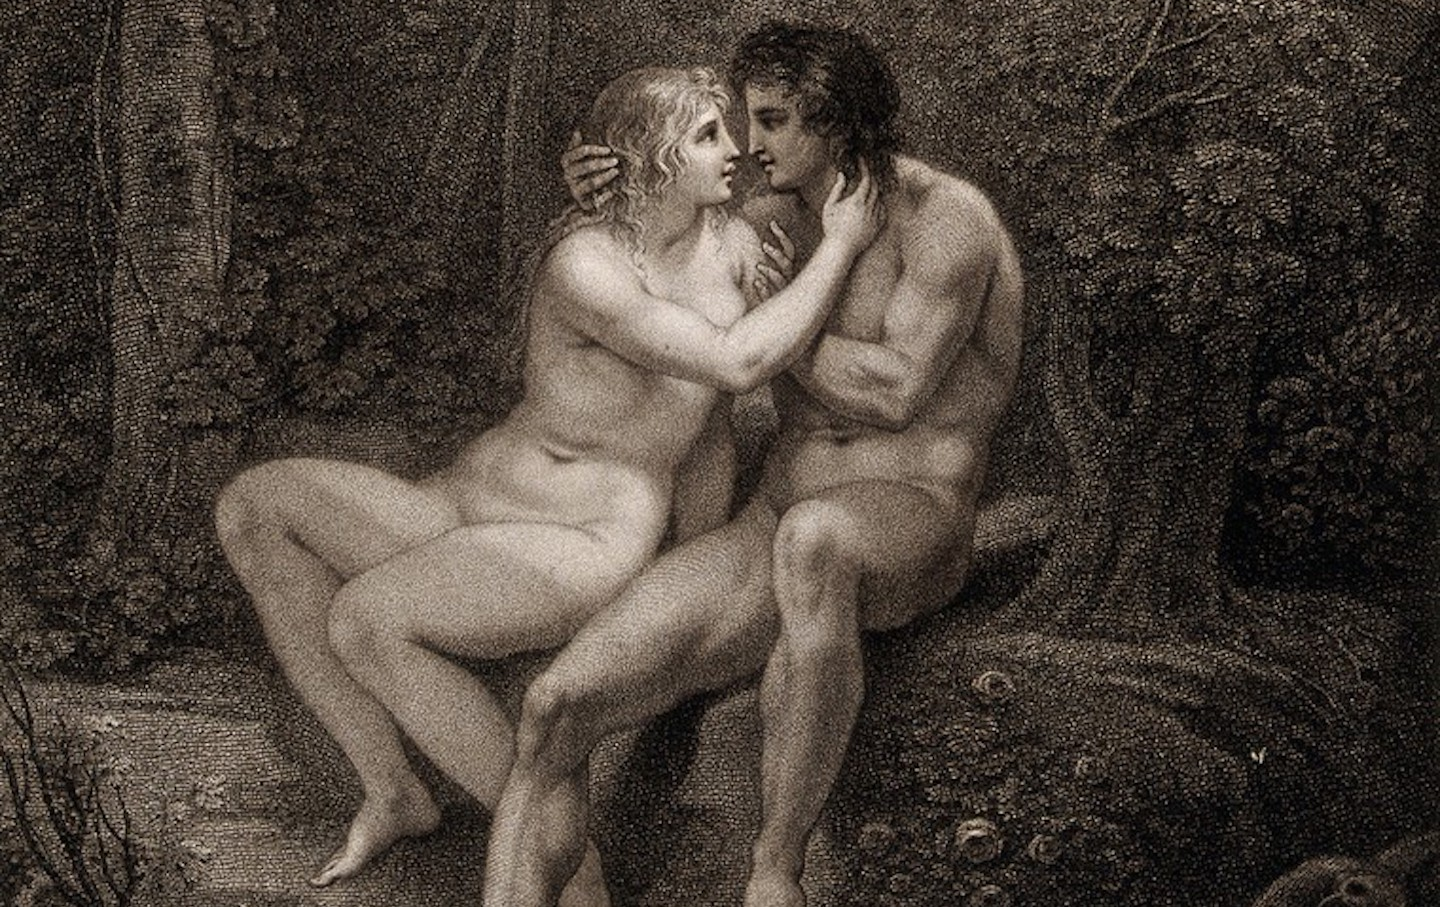 ADAM AND EVE WELLCOME COLLECTION